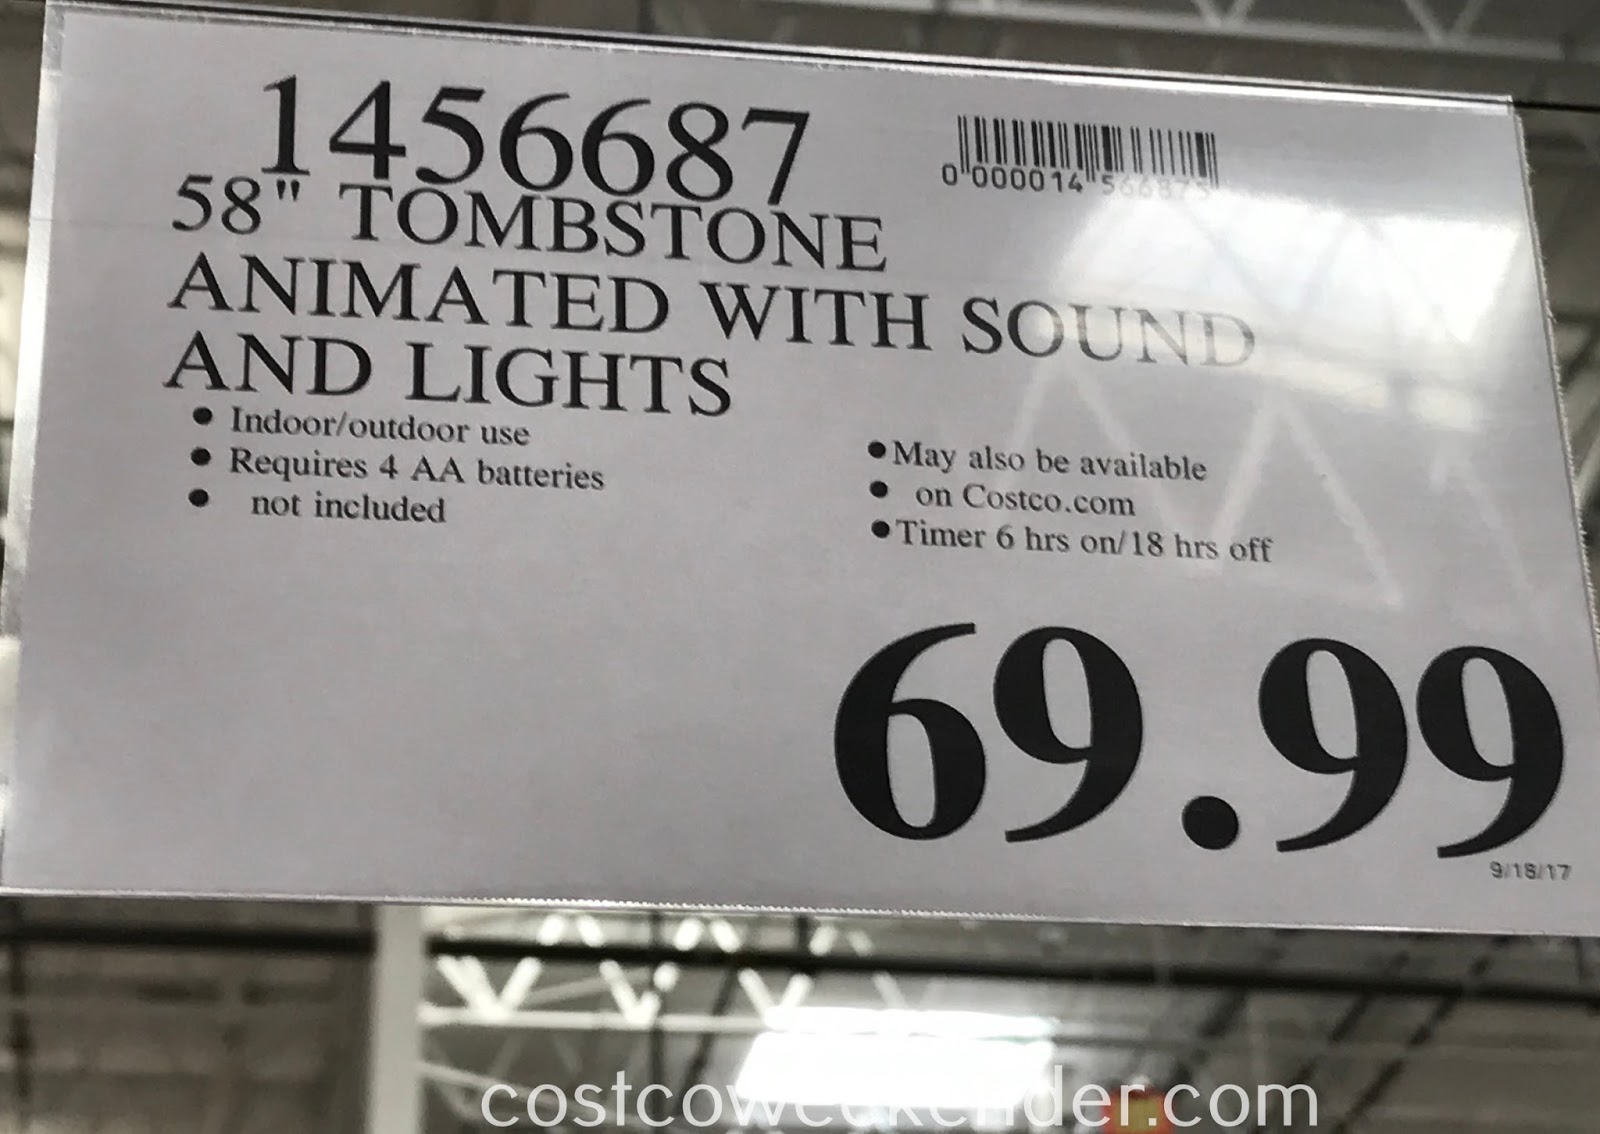 Costco 1456687 - Deal for the 58in Talking Tombstone with Lights and Sounds at Costco